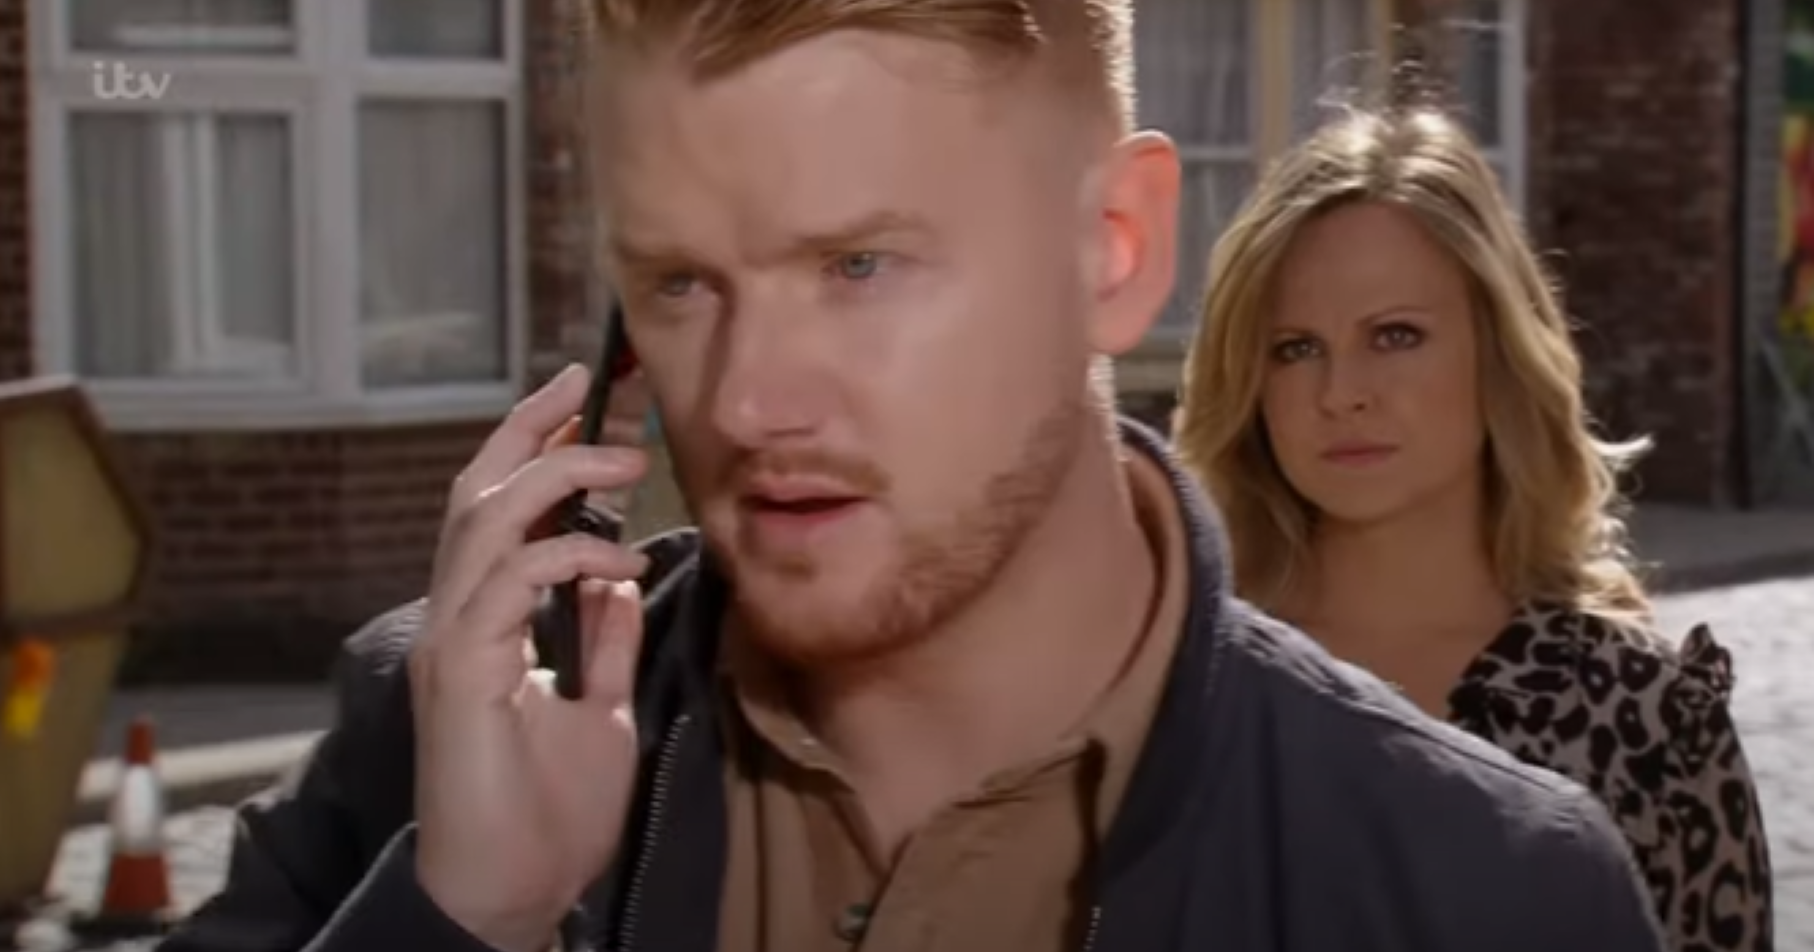 Coronation Street boss Iain MacLeod teases more to come for Gary and Sarah's relationship